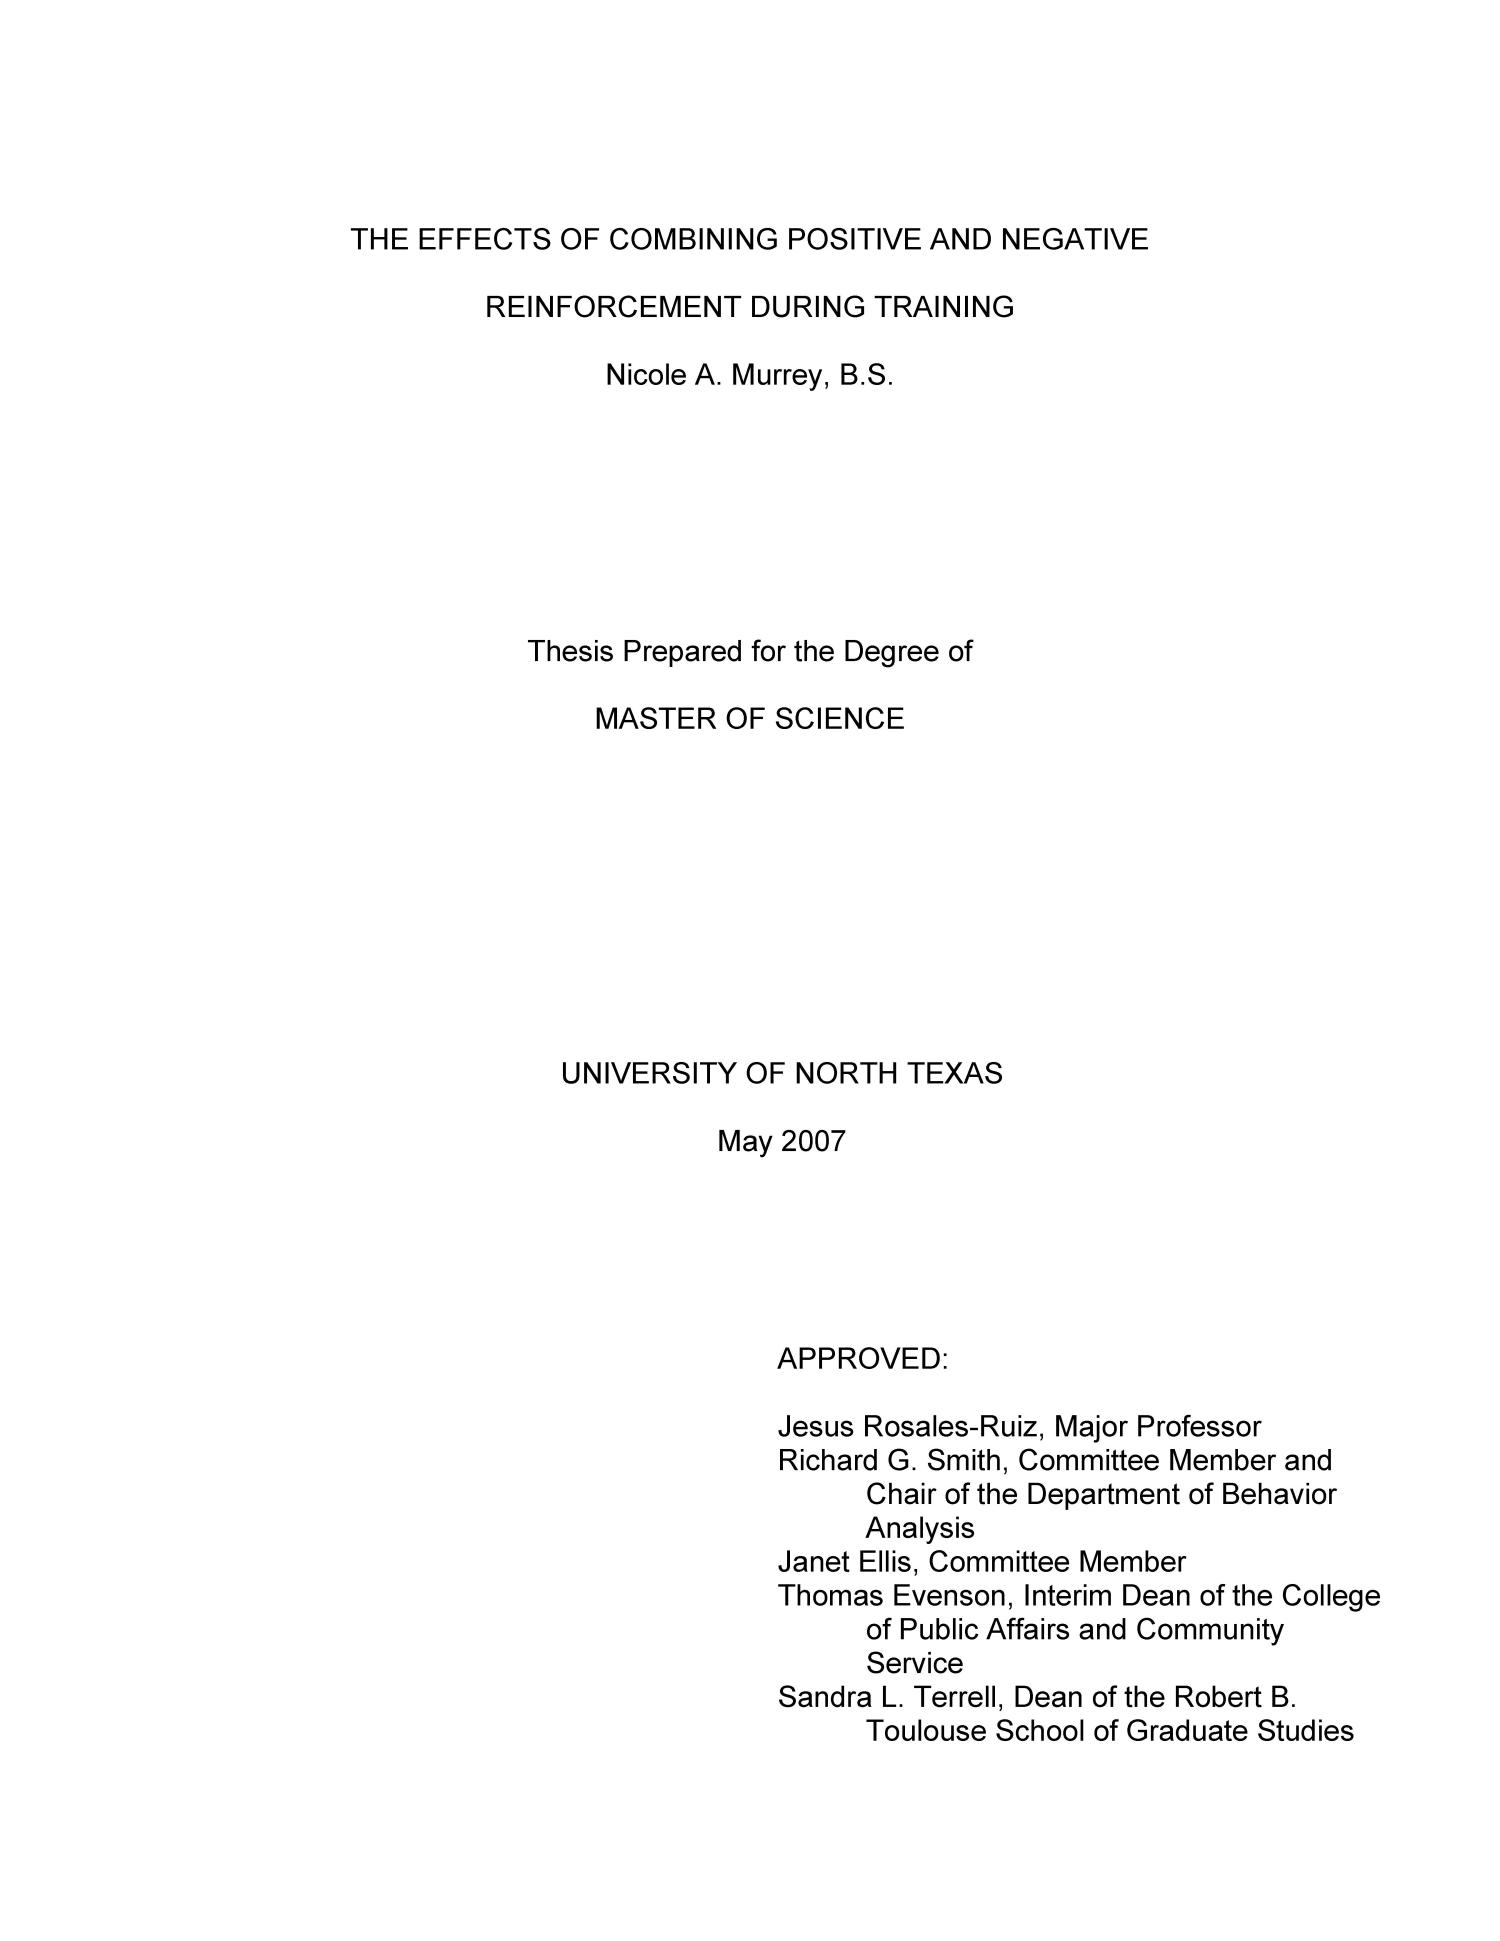 Masters thesis on behavior analysis